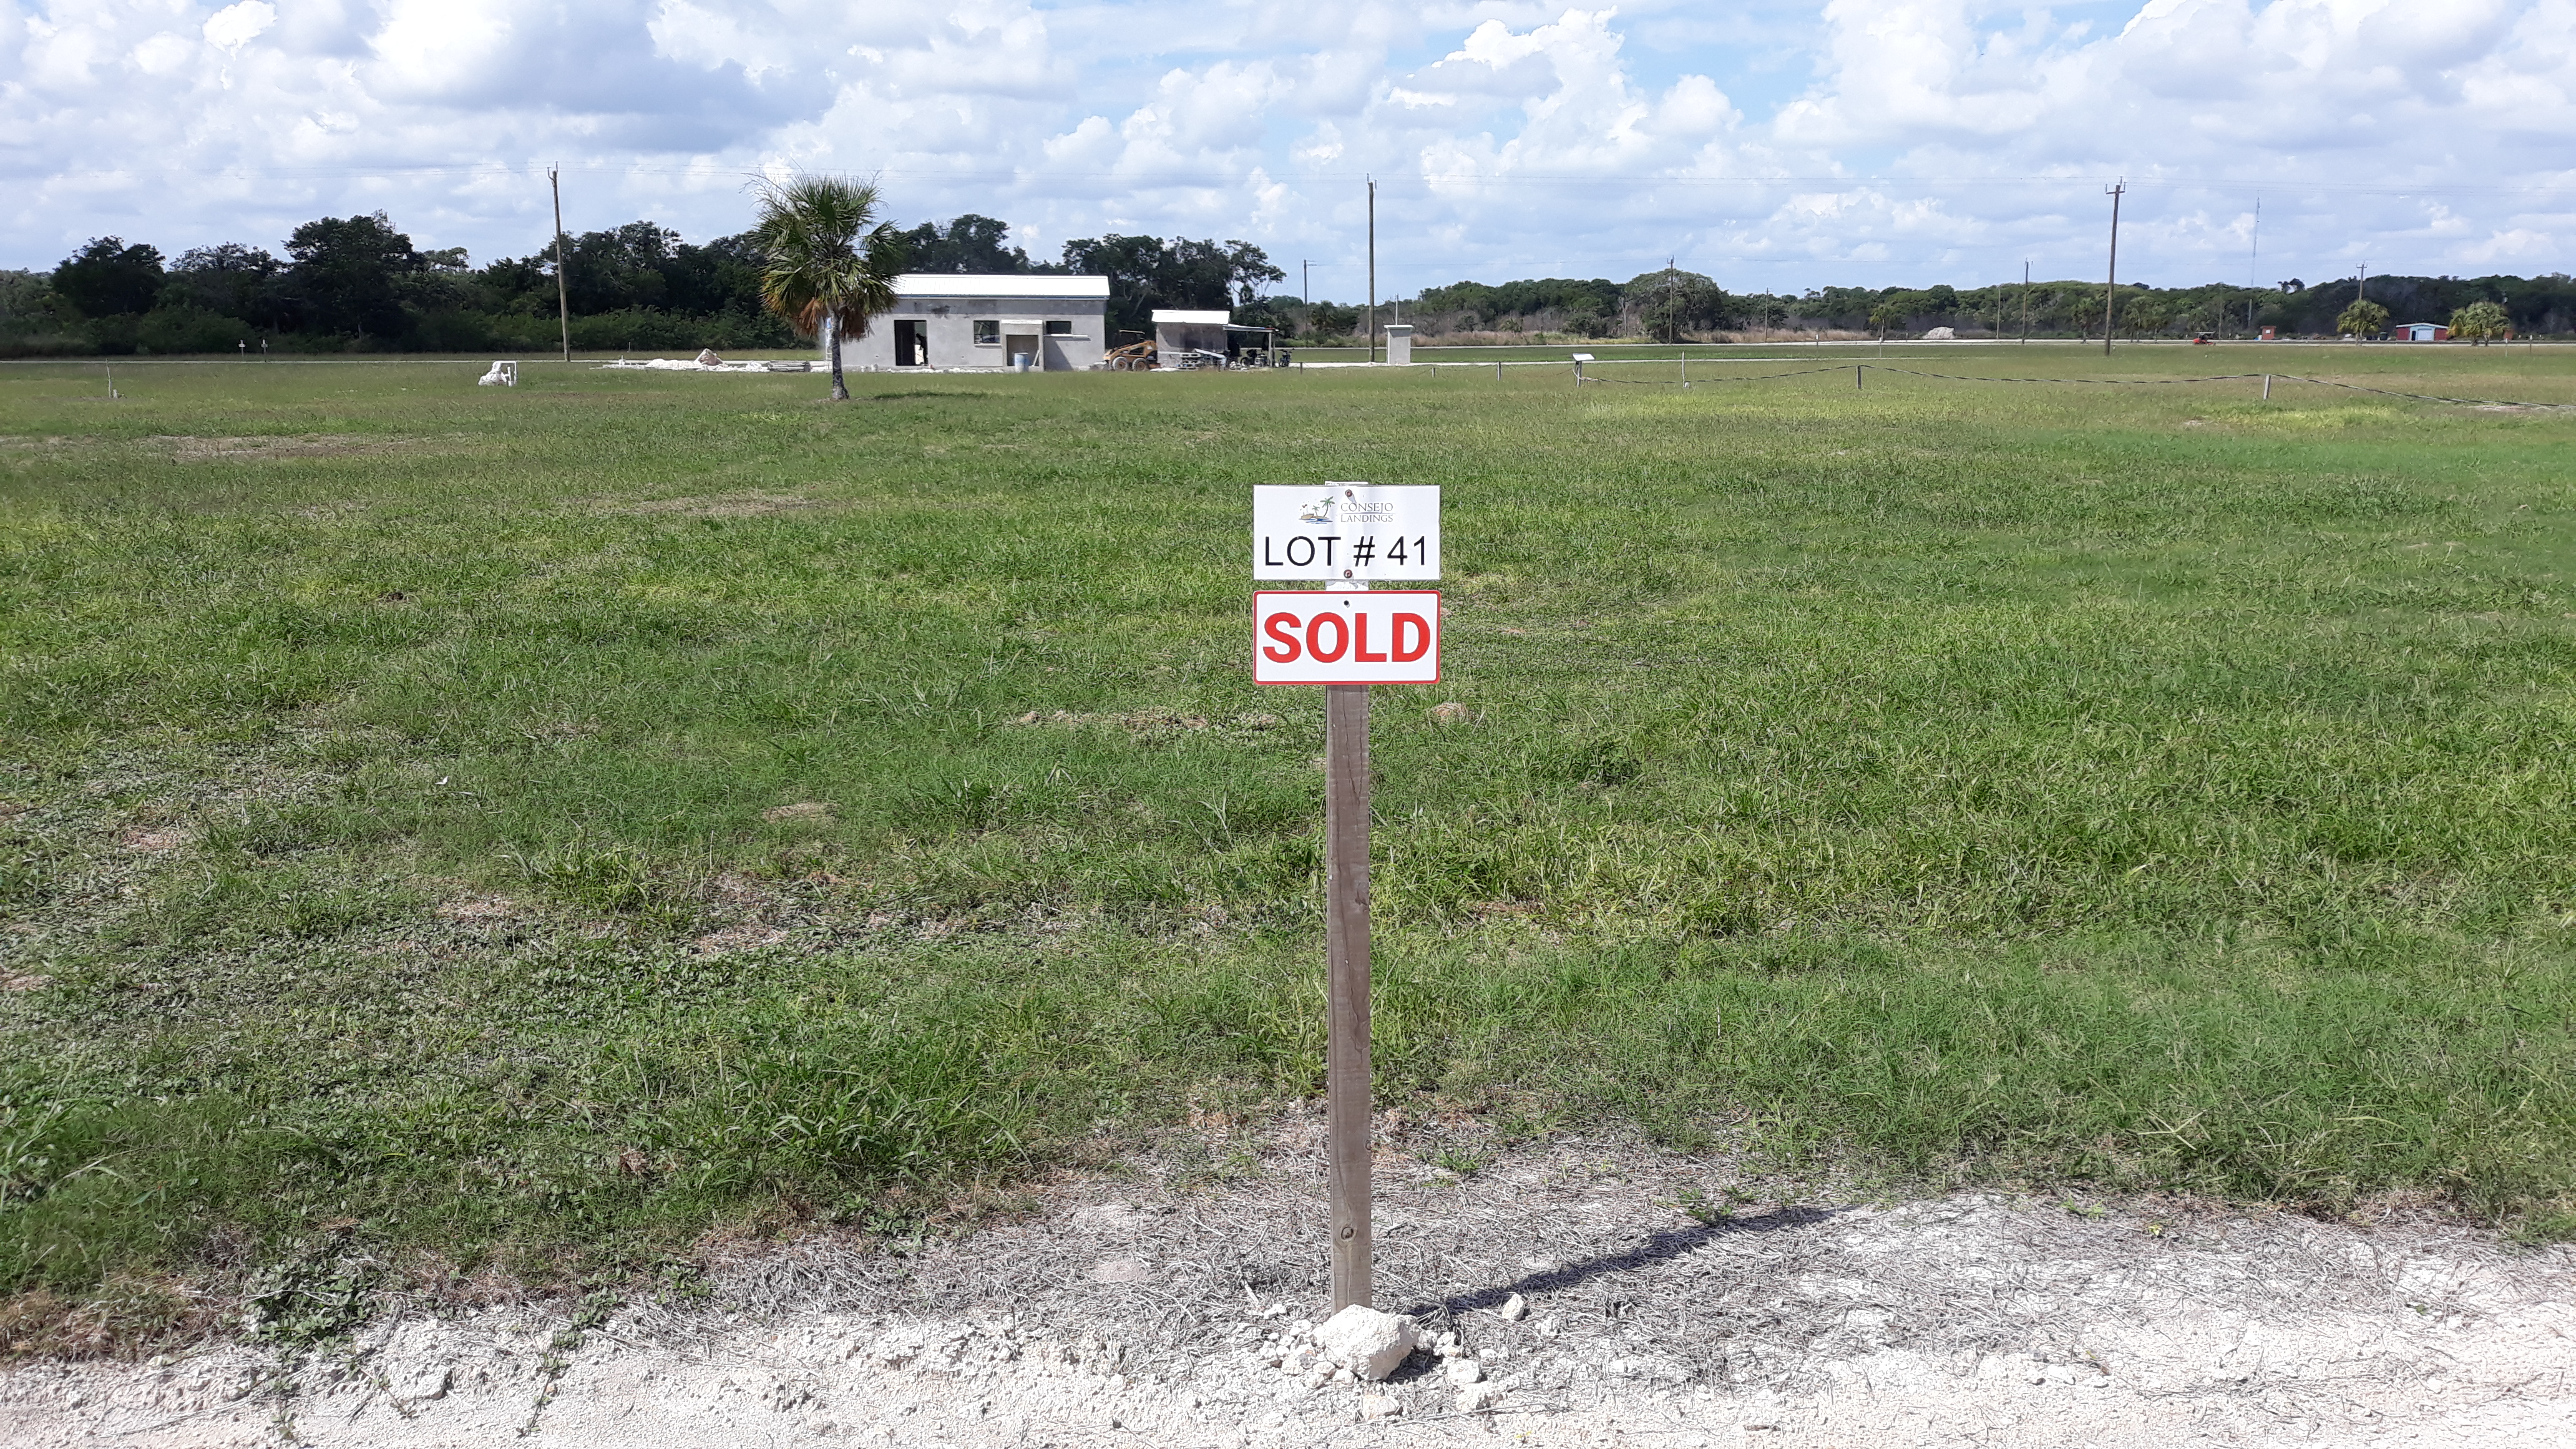 Sold - Lot#41